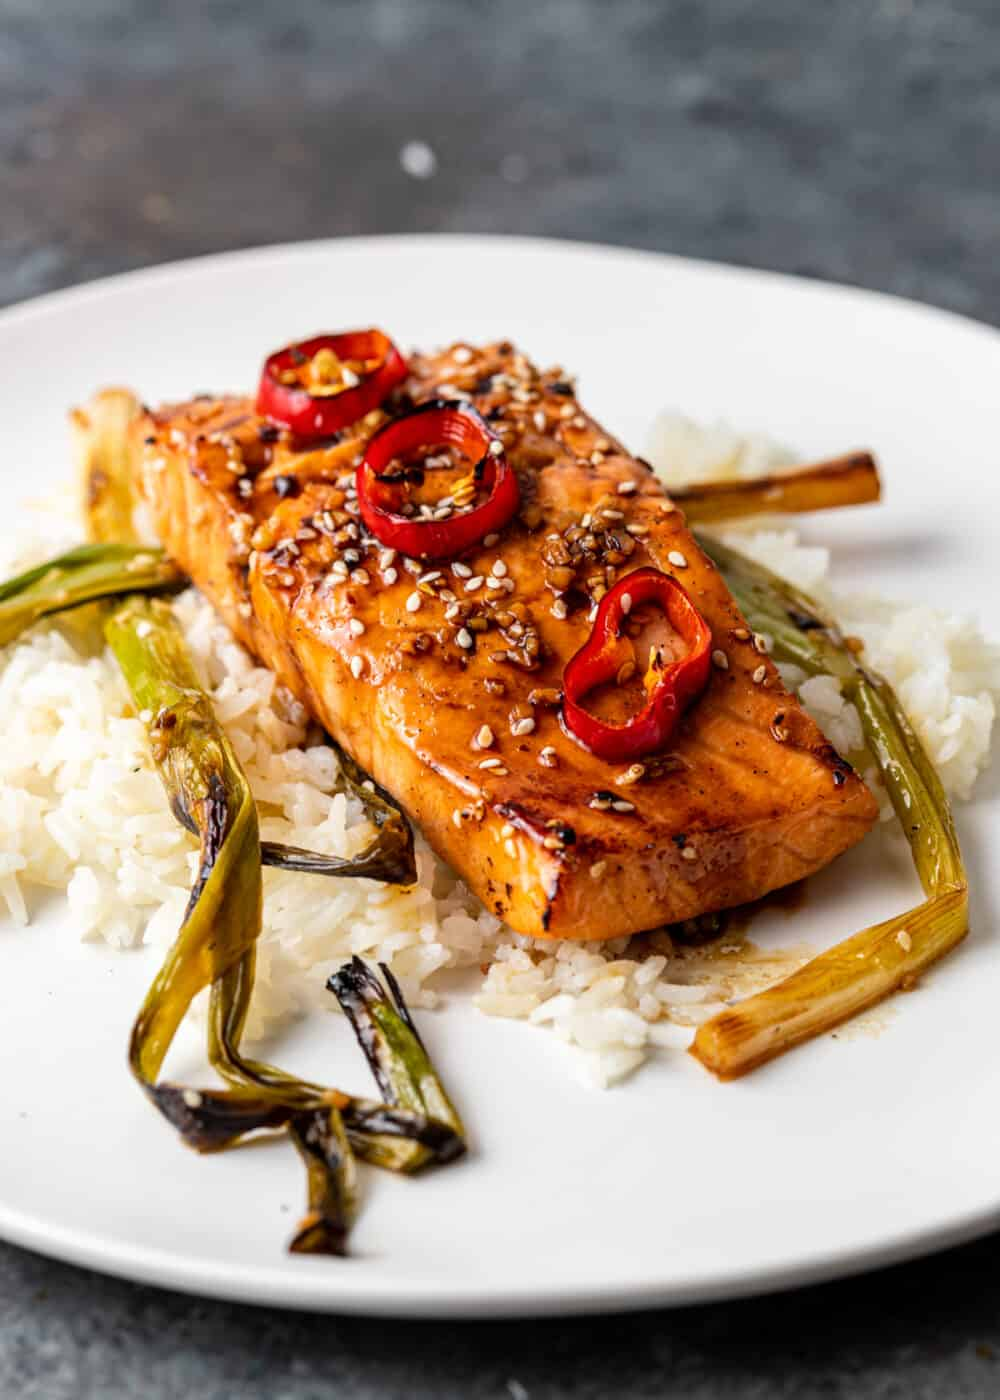 plated: healthy salmon dinner on bed of white rice with scallions and chili peppers